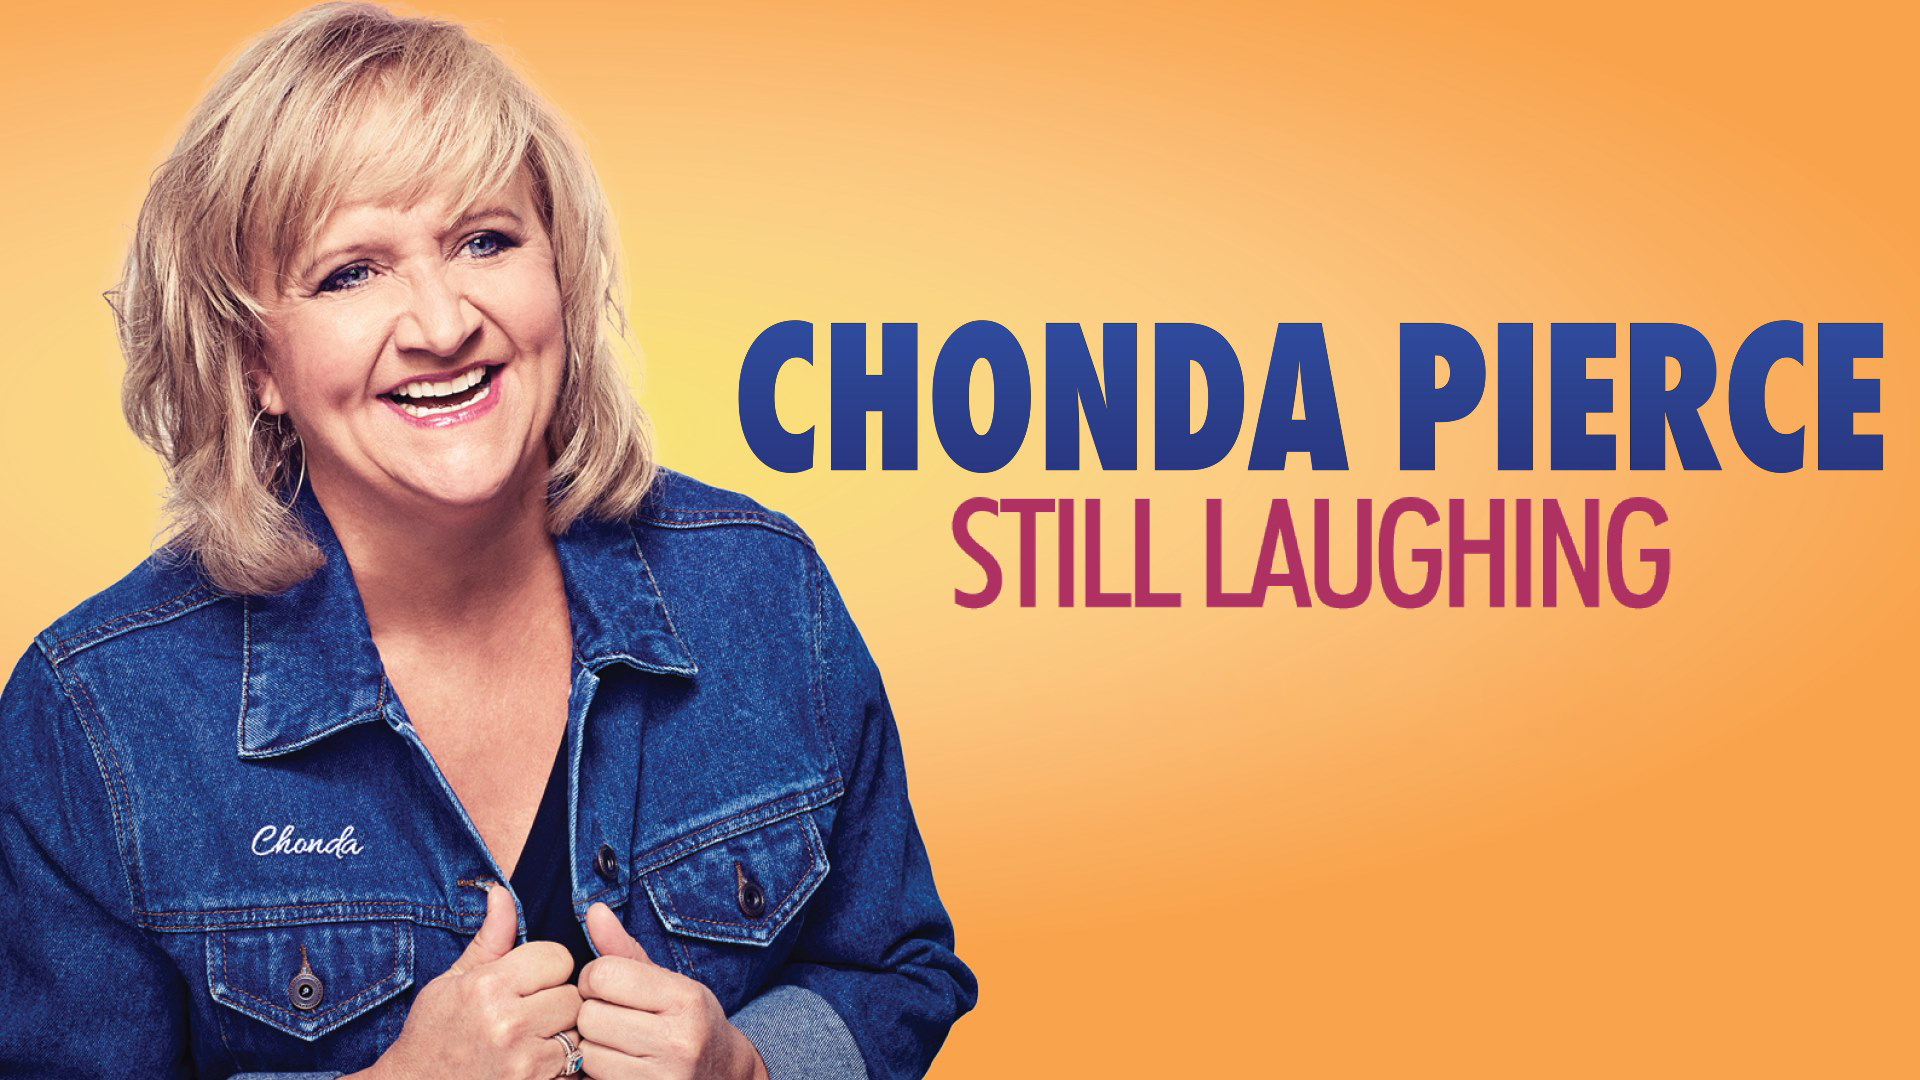 Chonda Pierce: Still Laughing